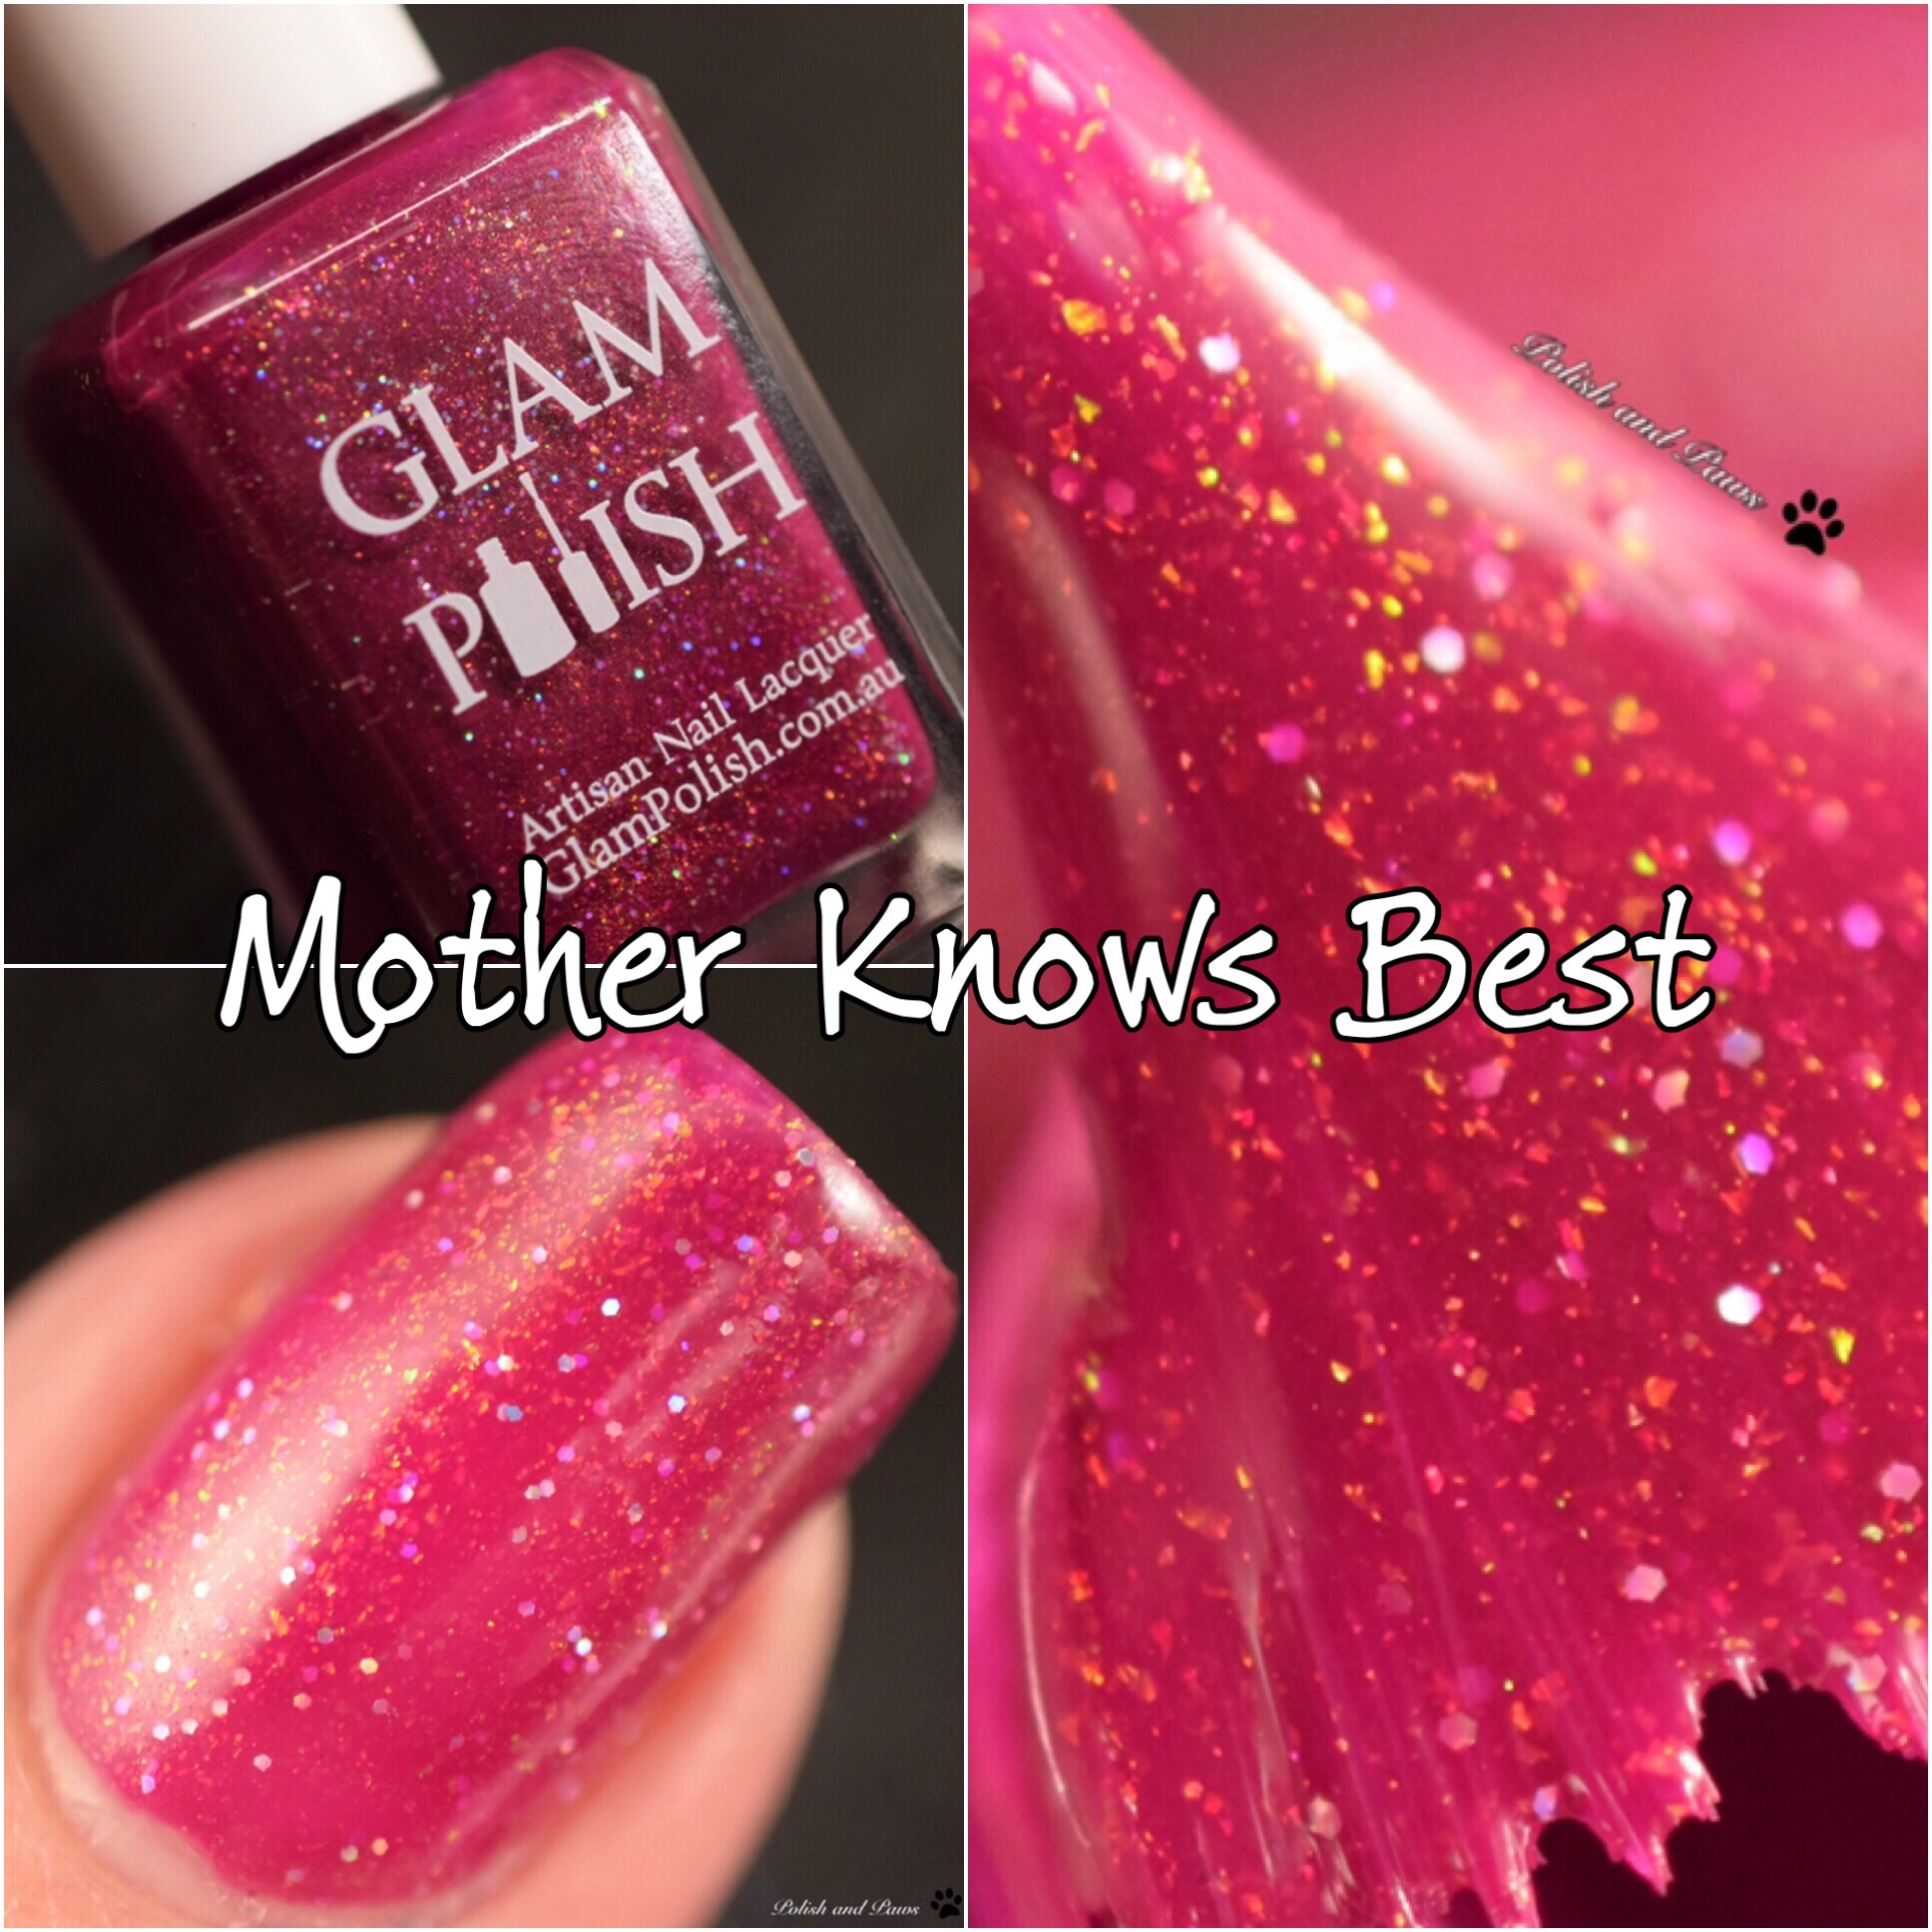 Glam Polish Mother Knows Best